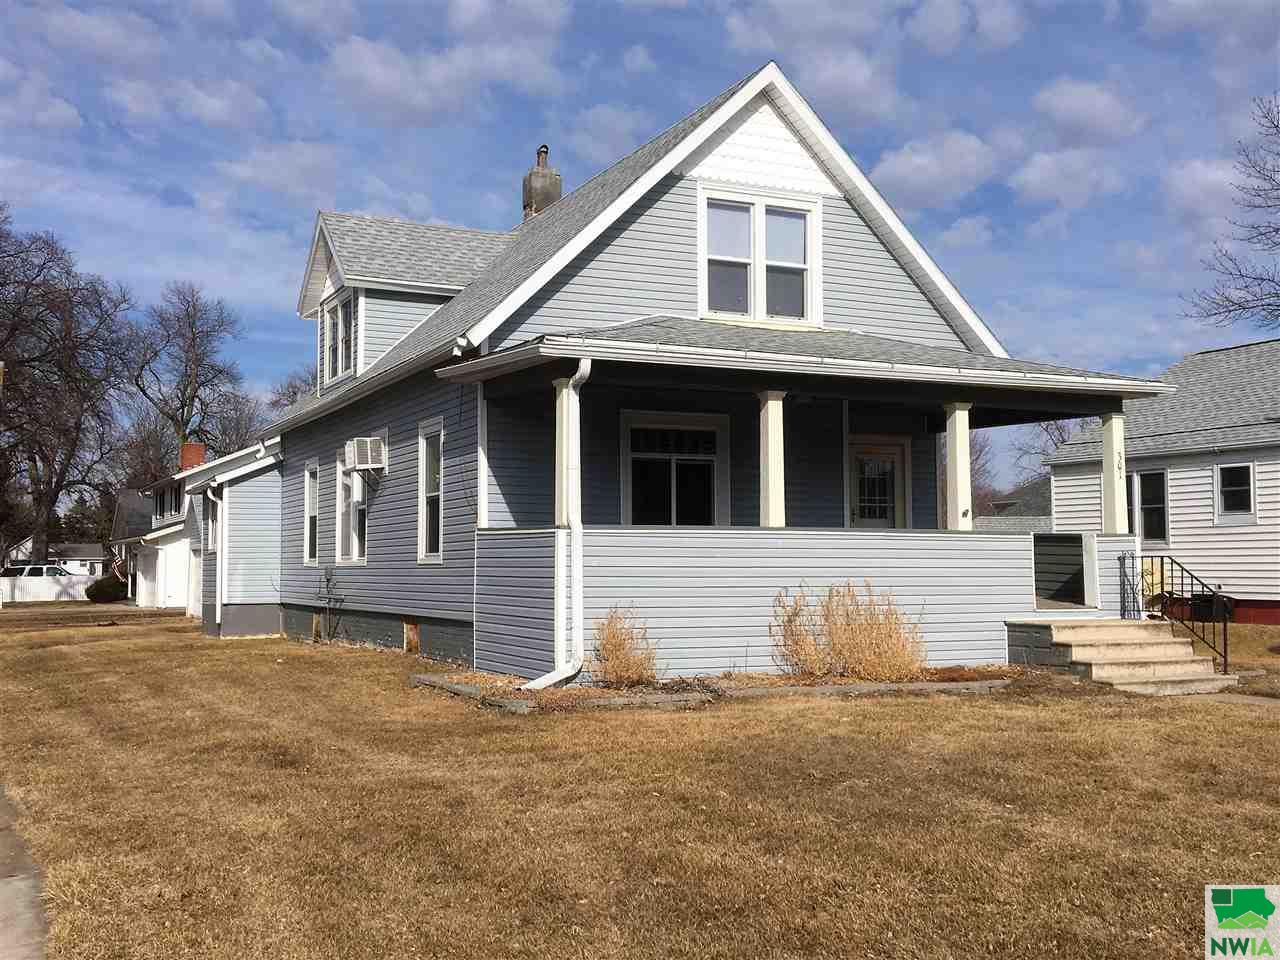 Property for sale at 301 E Main St, Elk Point,  SD 57025